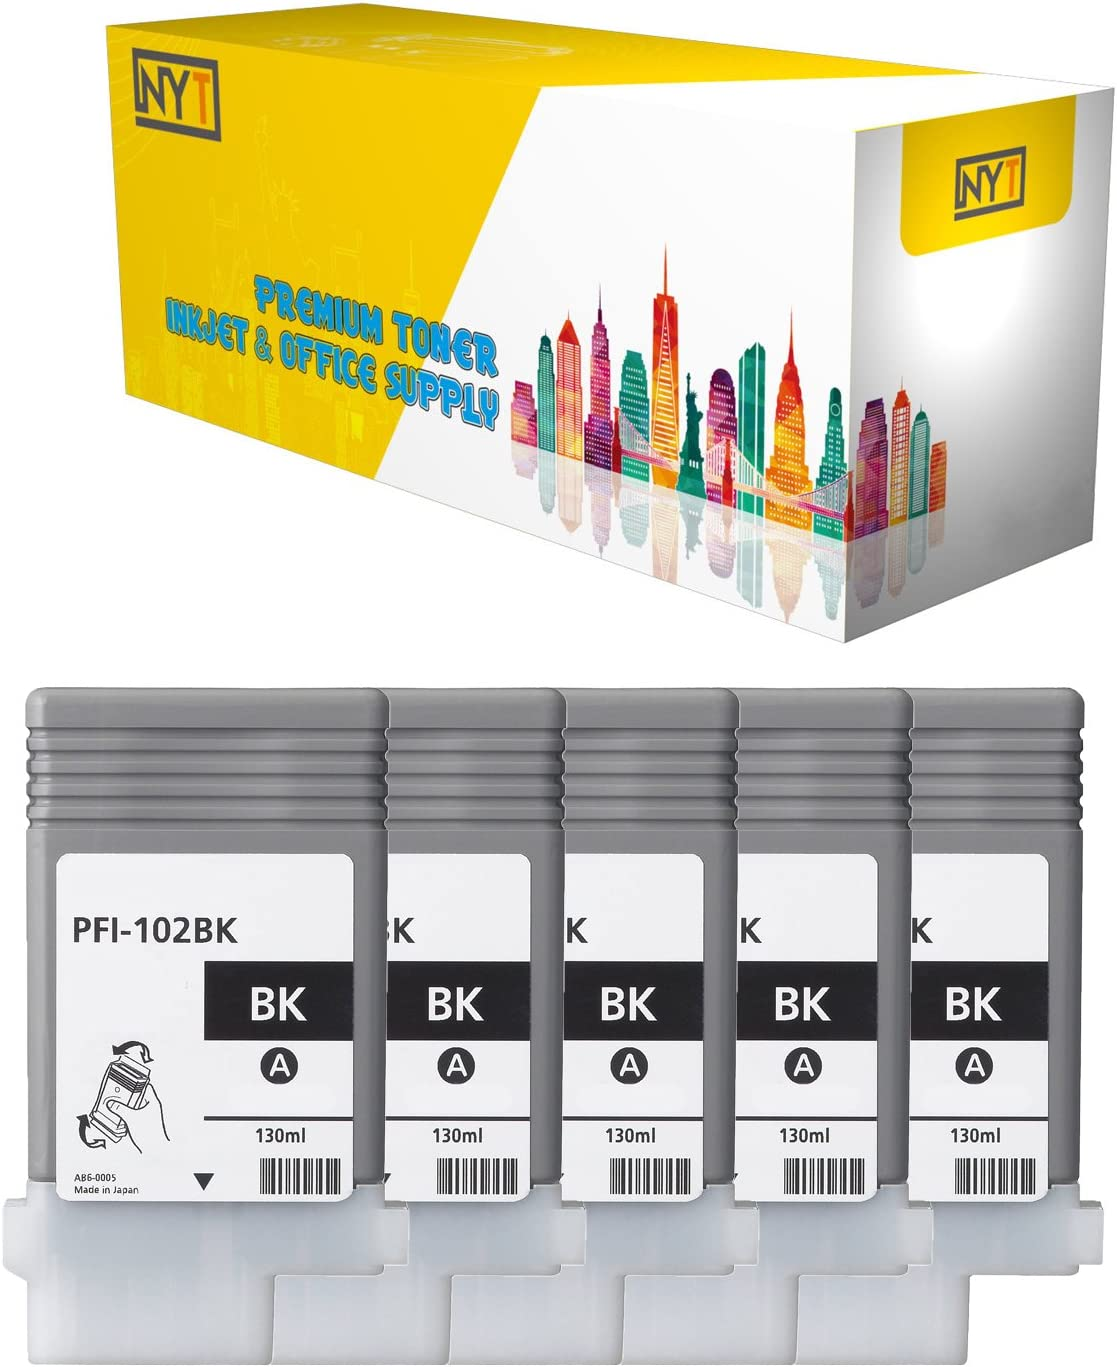 NYT Compatible High Yield Inkjet Cartridge Replacement for PFI-102BK for Canon ImagePROGRAF iPF 500 Black, 5-Pack 510 600 710 610 720